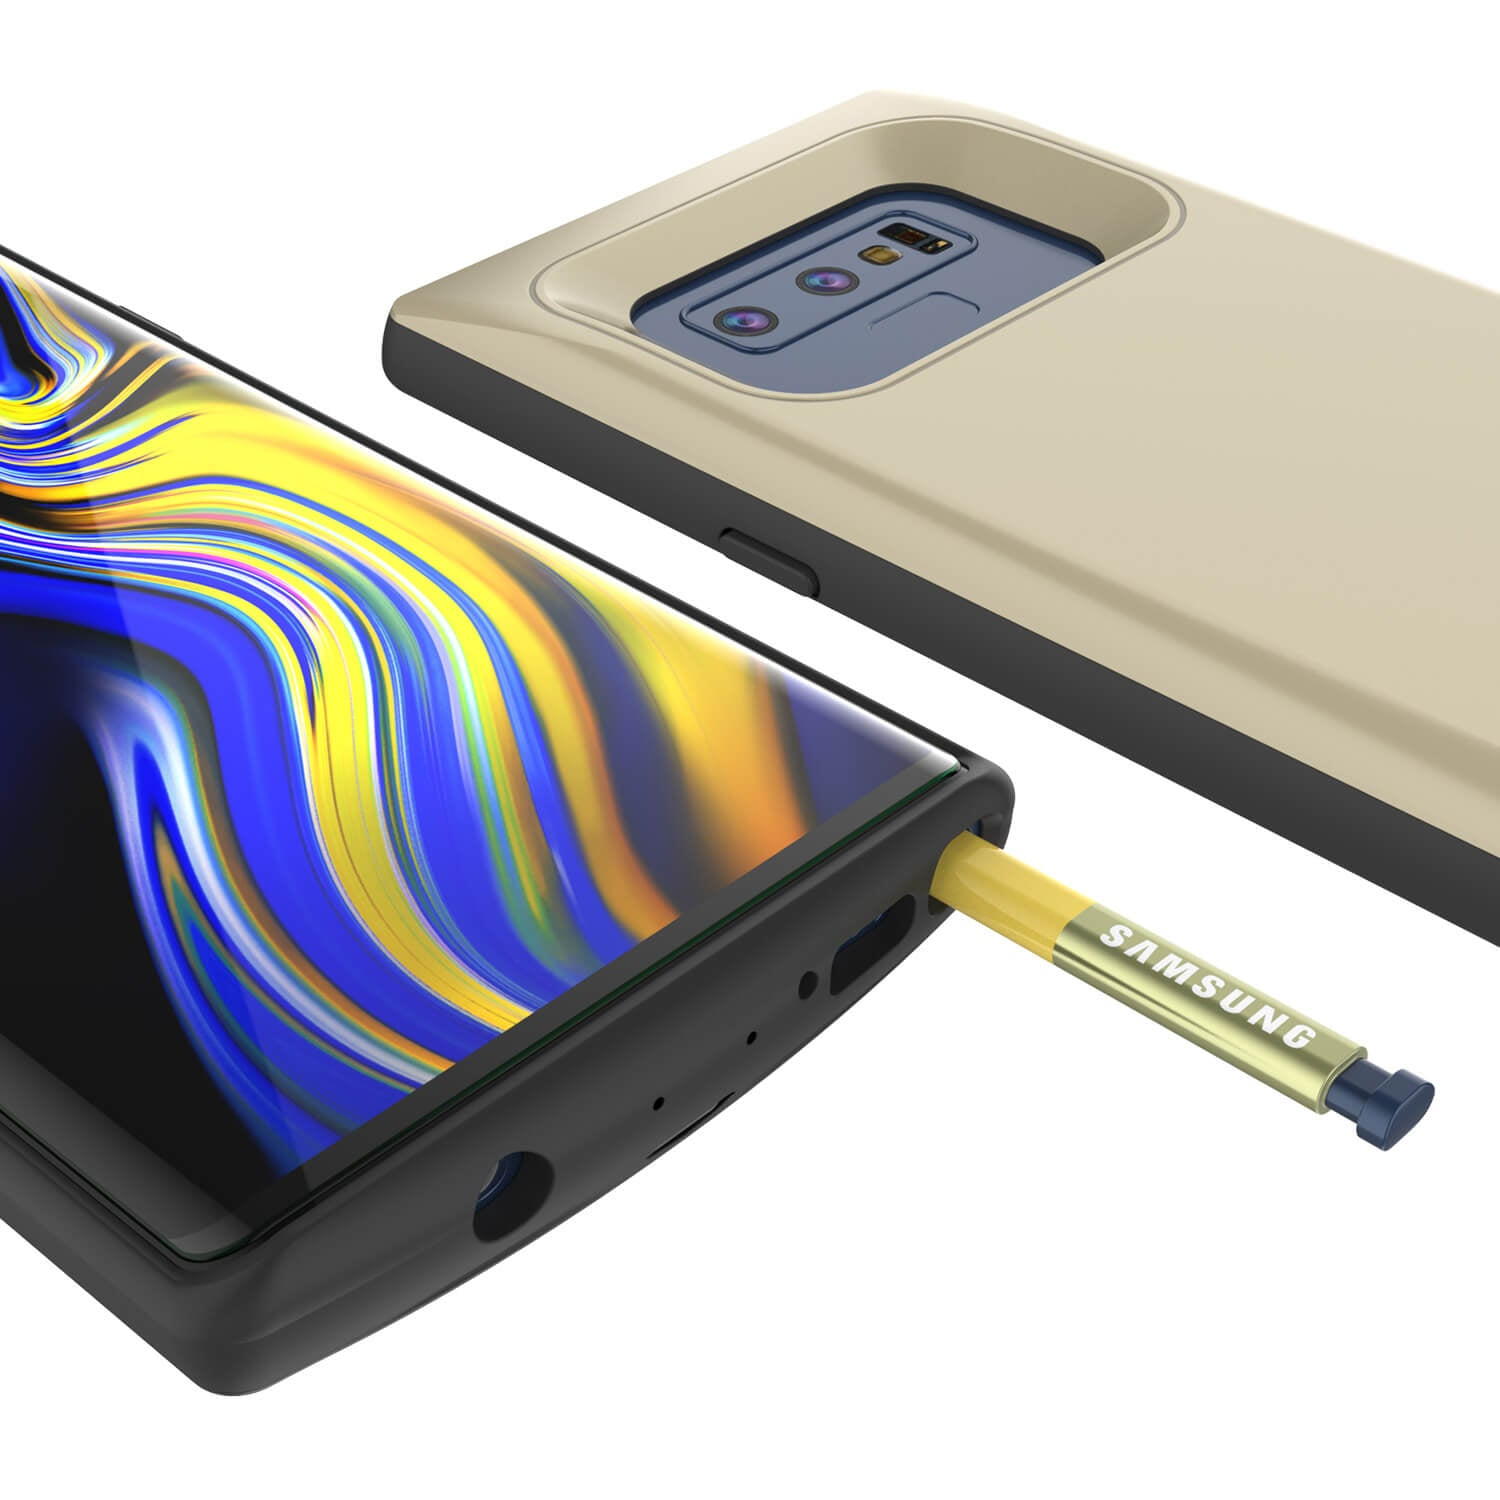 Galaxy Note 9 5000mAH Battery Charger W/ USB Port Slim Case [Gold]